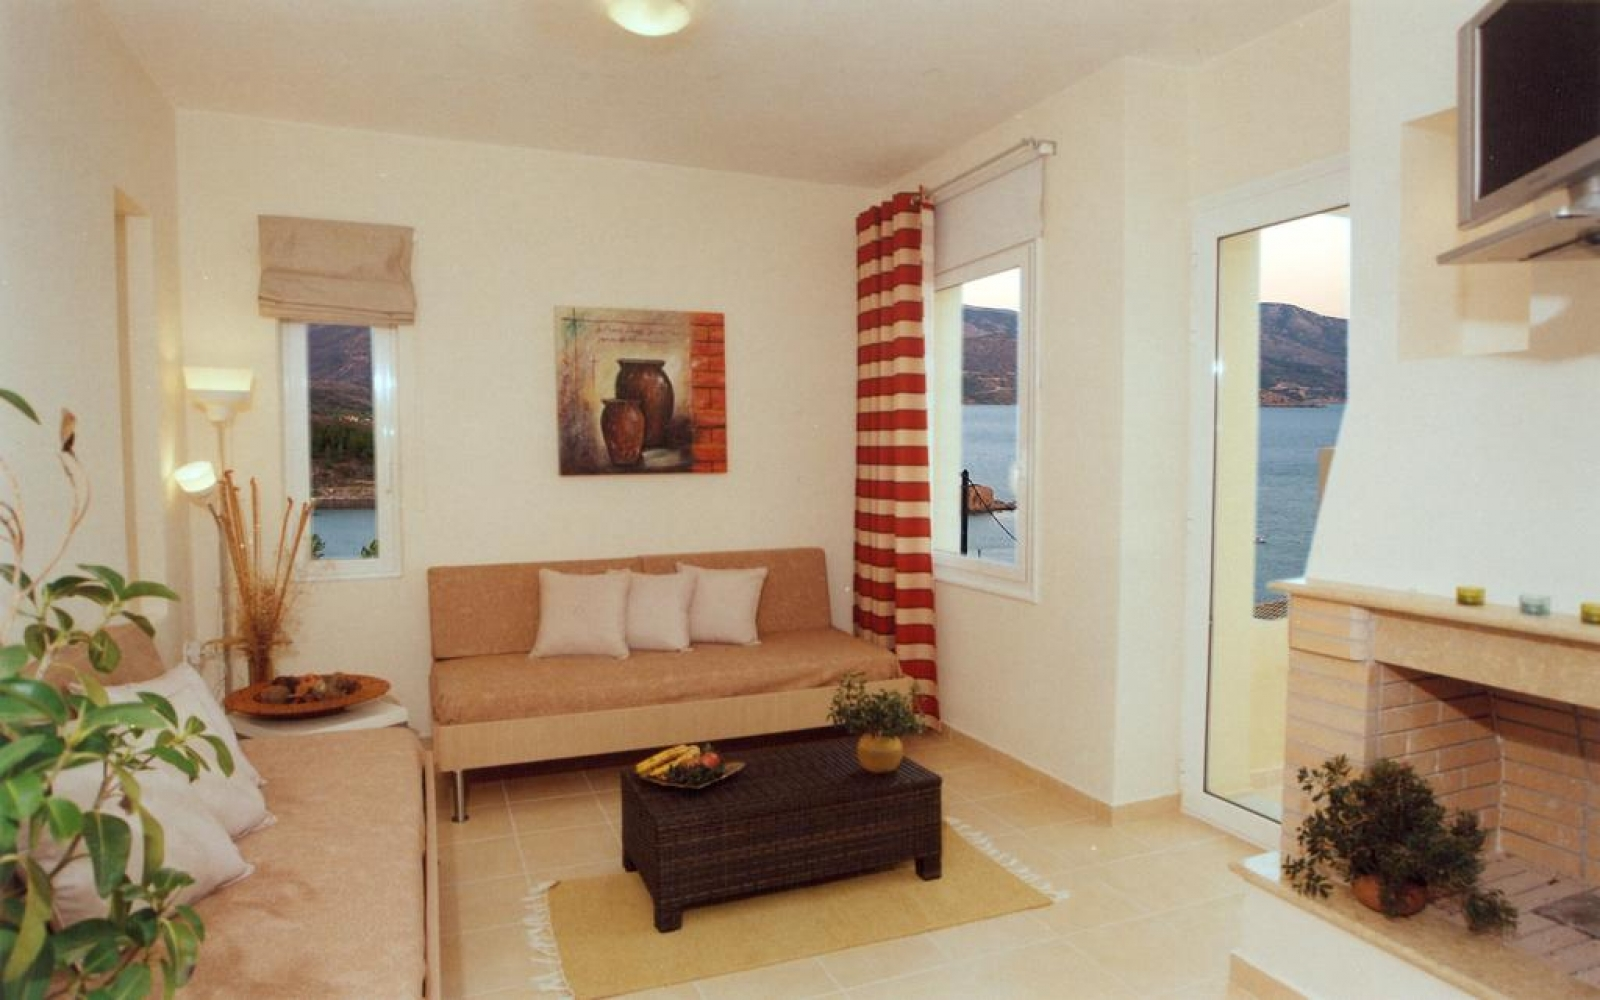 Deluxe One-Bedroom Apartment with Sea View (2 Adults & 1 child)